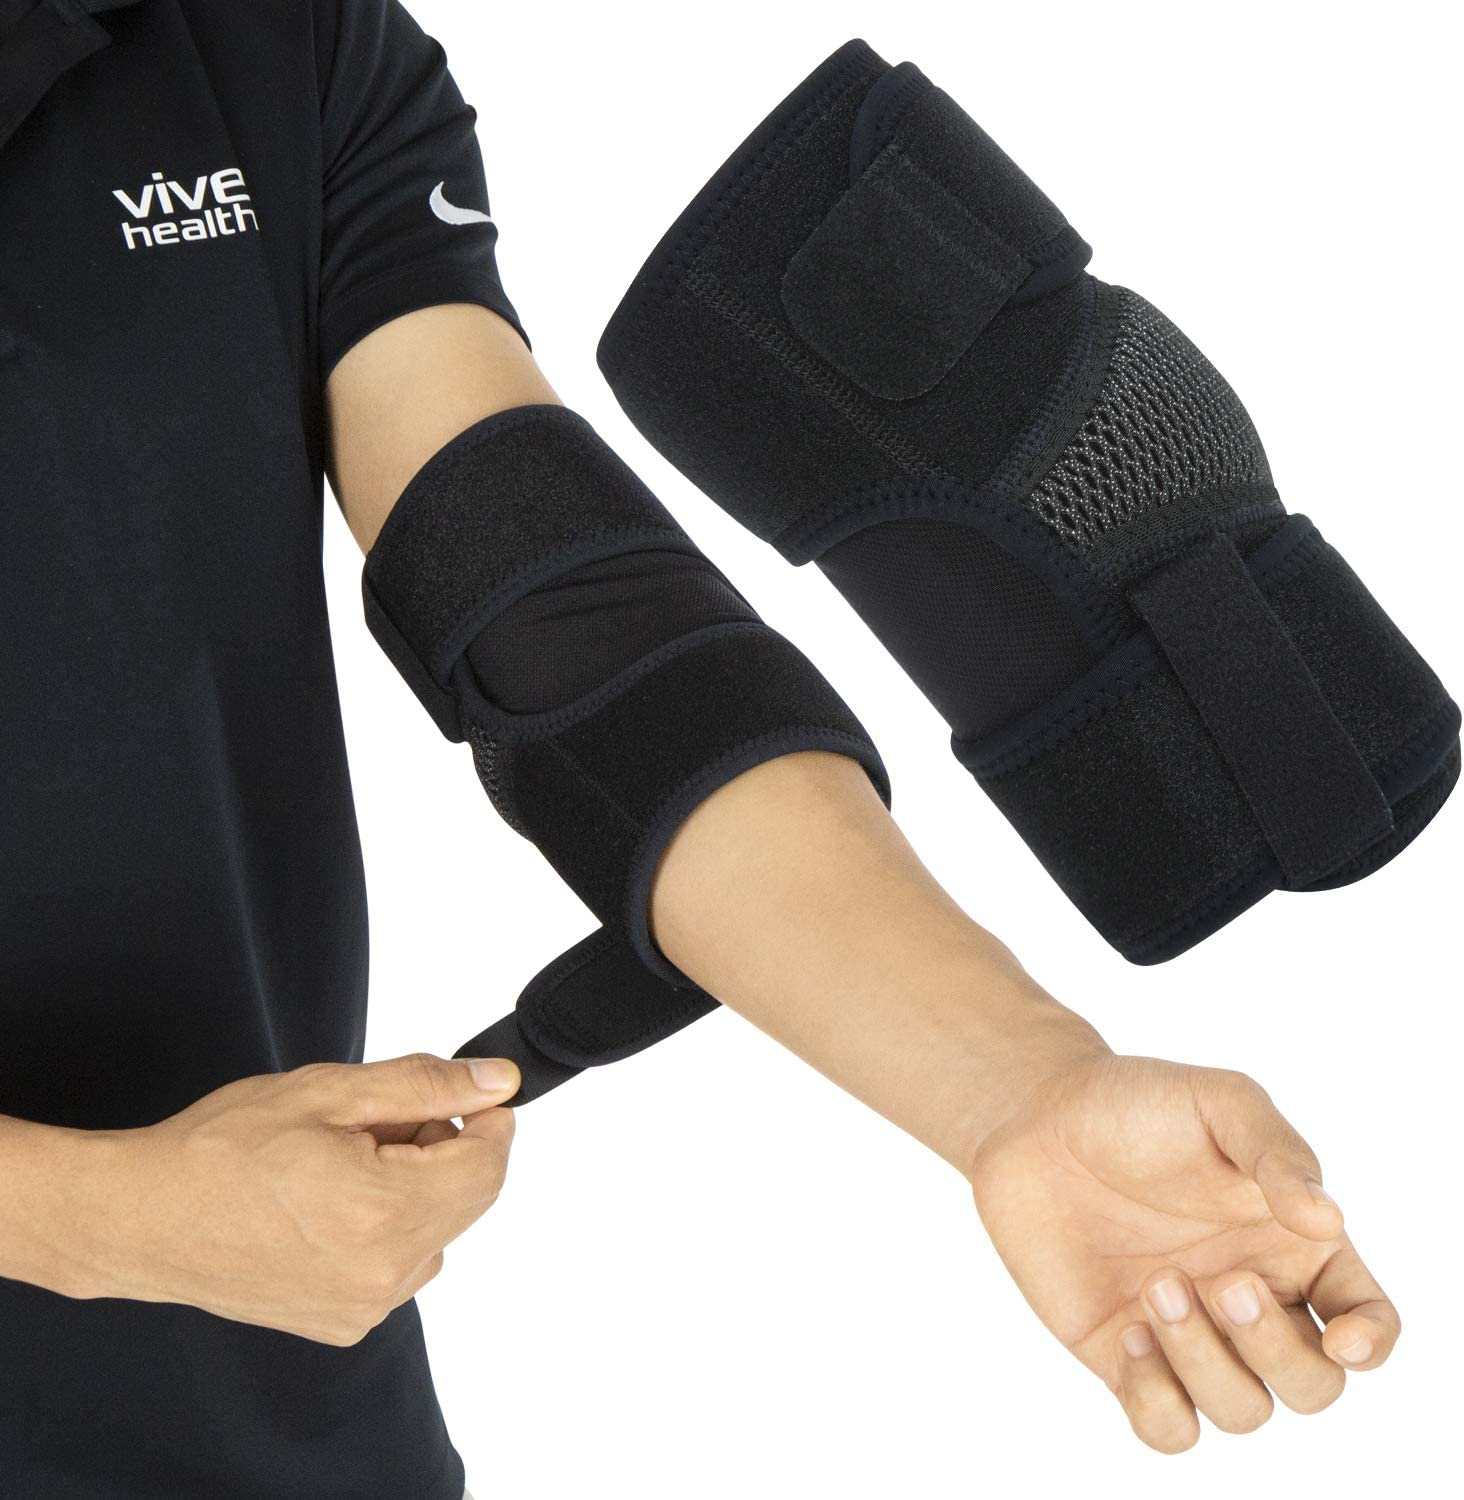 Vive Elbow Brace - Tennis Compression Sleeve - Wrap for Golfers, Bursitis, Left or Right Arm - Tendonitis Support Strap for Golf, Men and Women - Epicondylitis and Sports Recovery Pain Relief: Industrial & Scientific